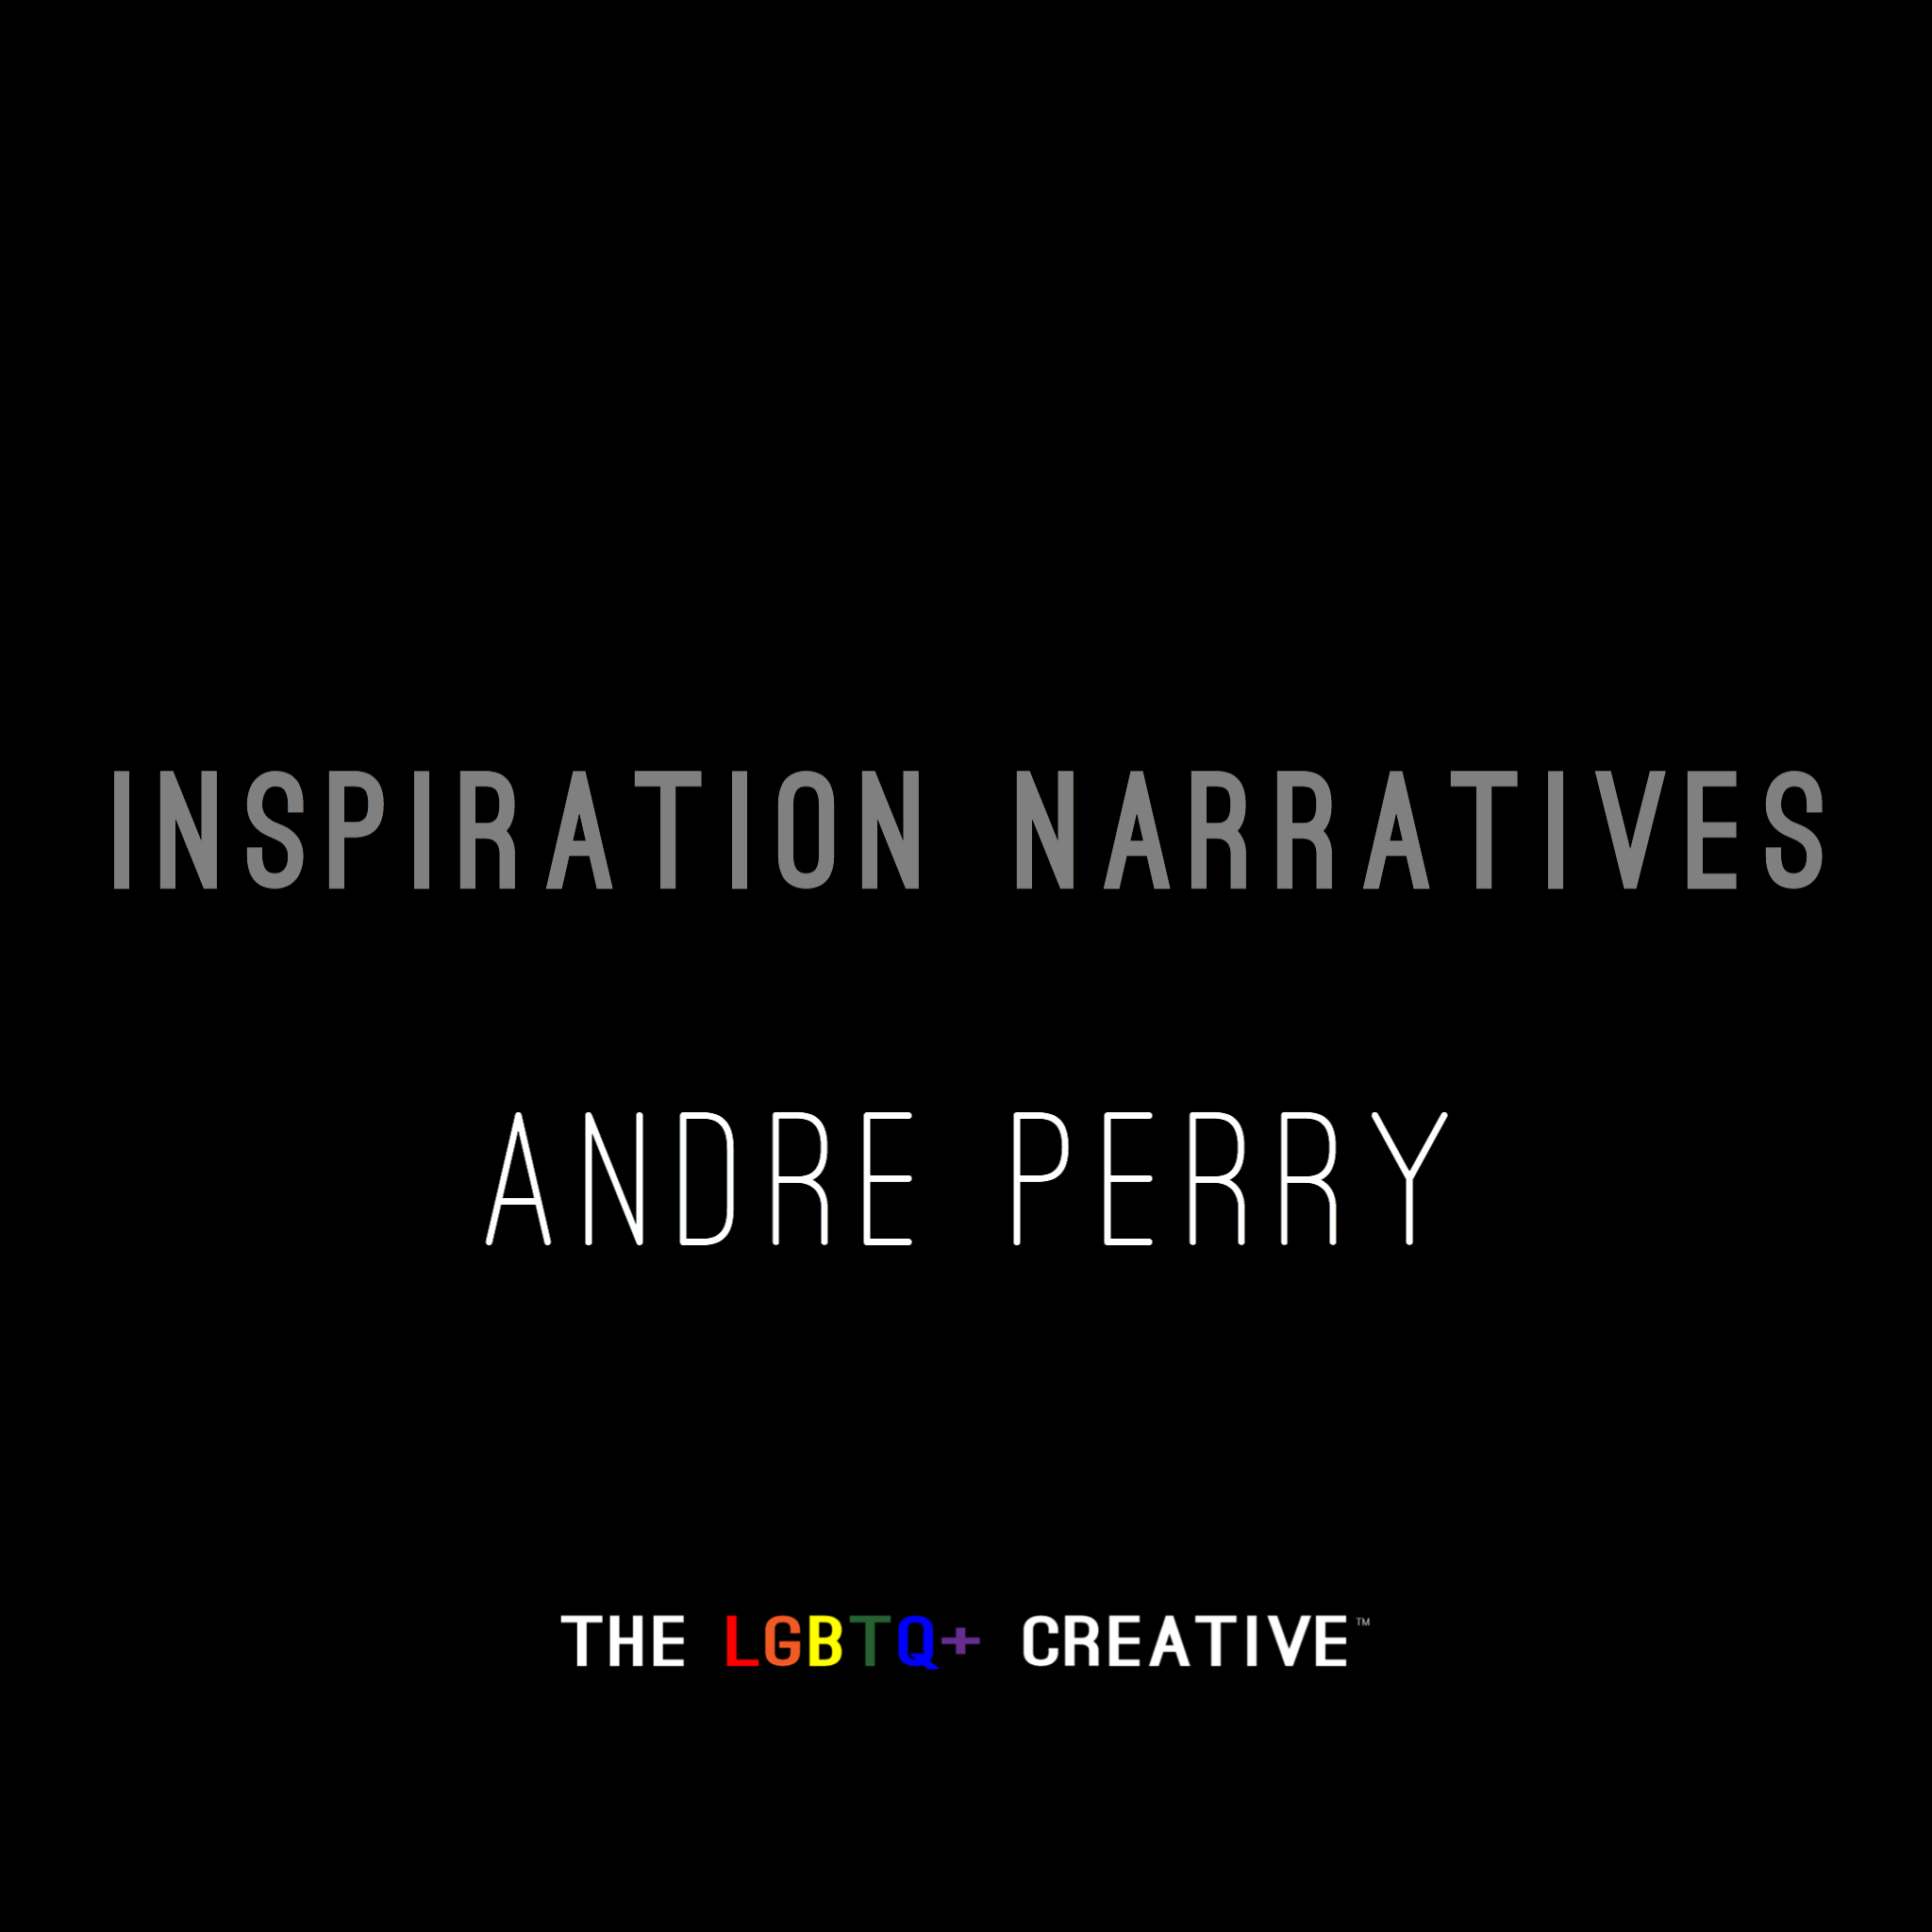 Inspiration Narratives - Andre L Perry